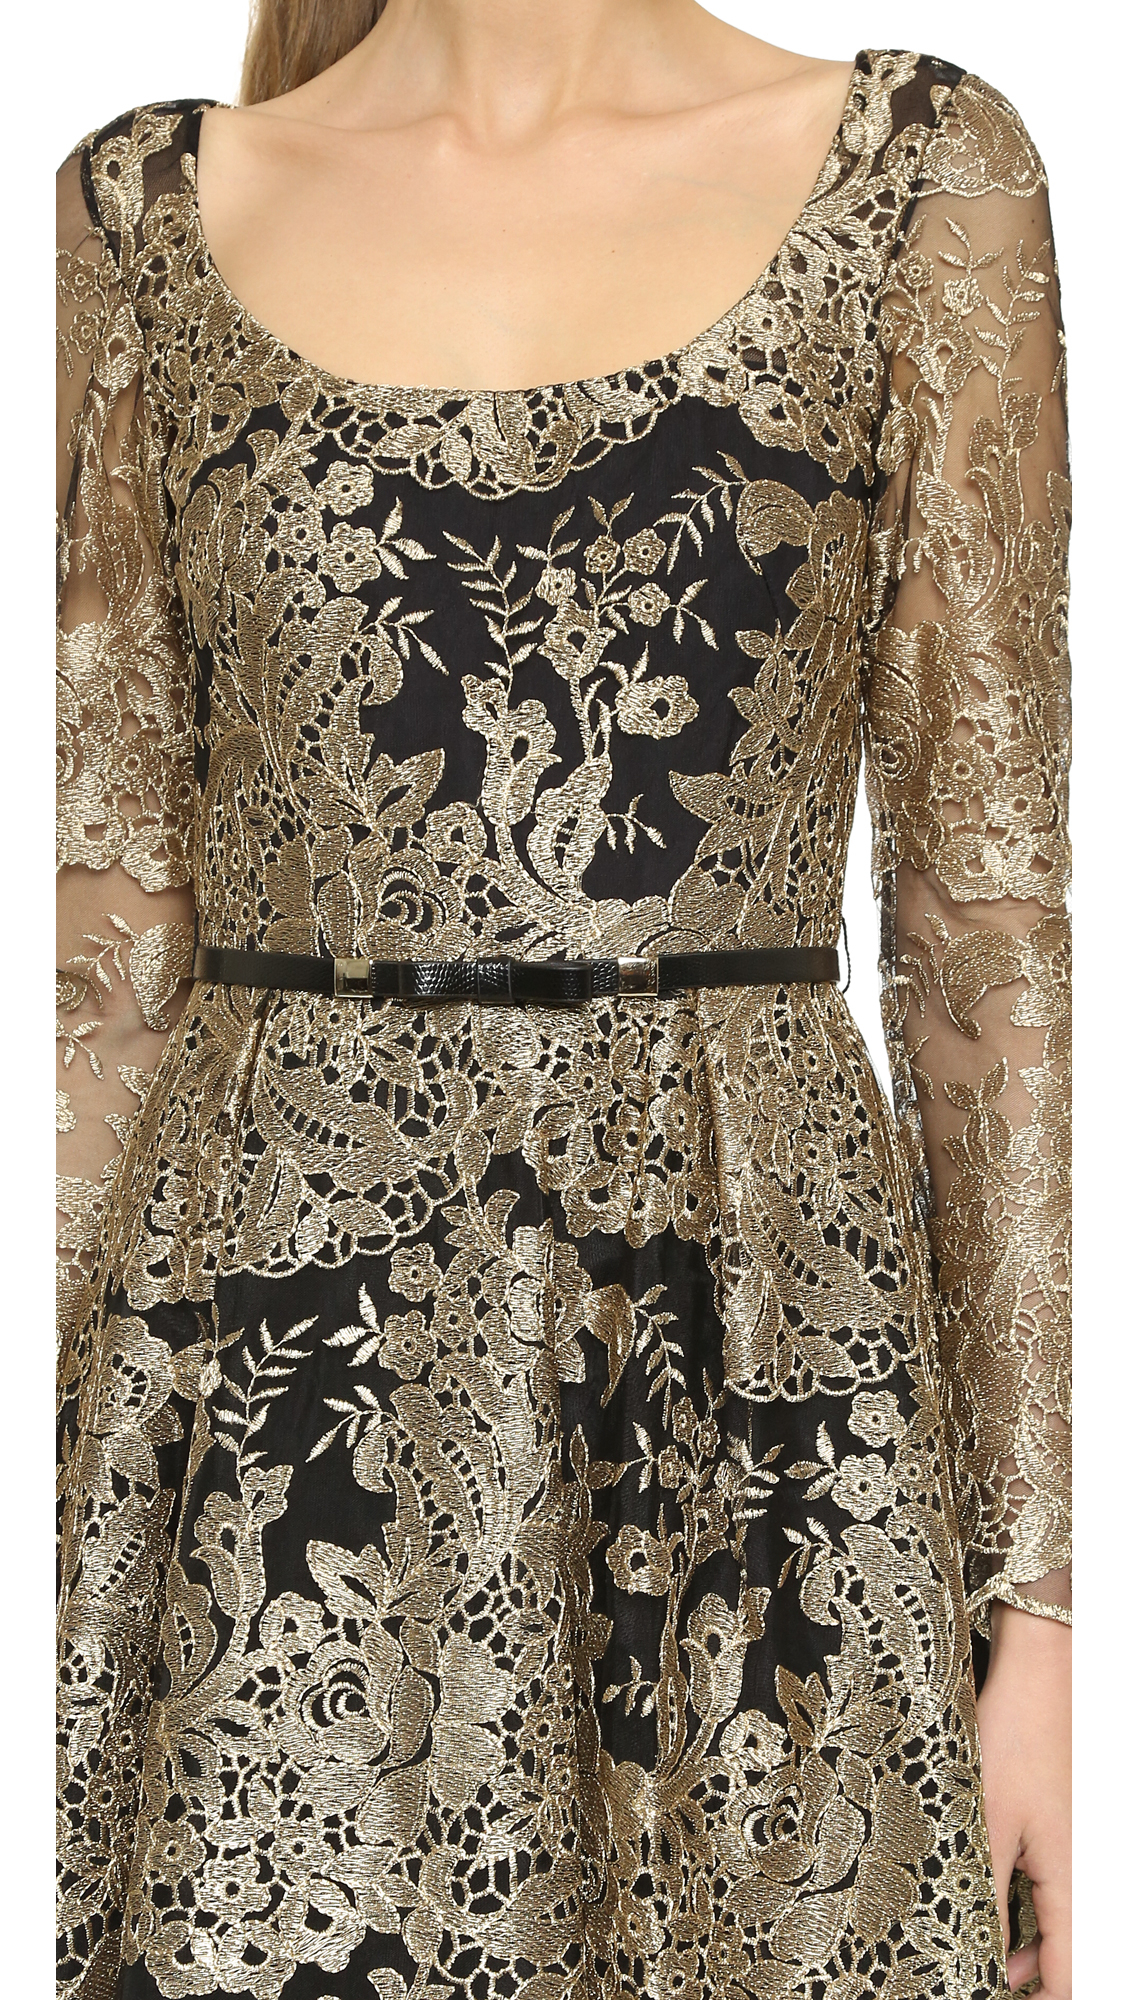 Black dress gold lace - Gallery